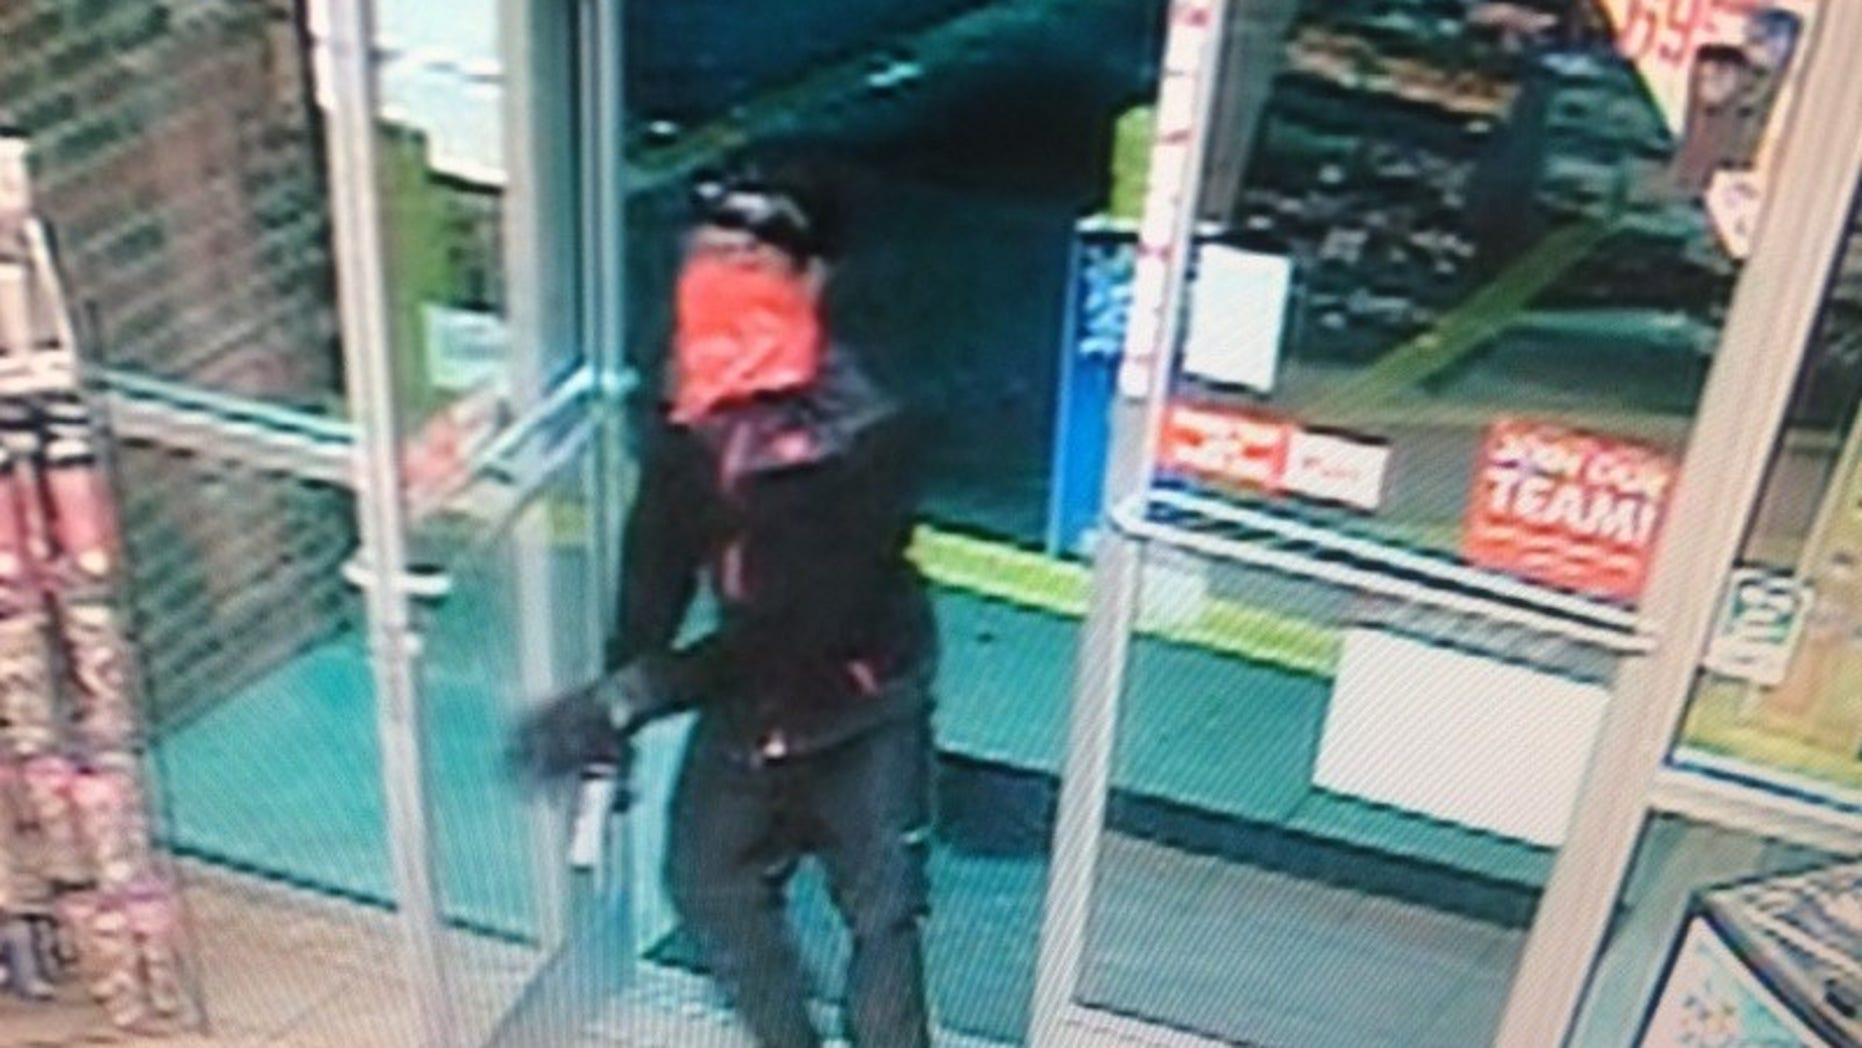 The suspect entering the store right before the kidnapping.